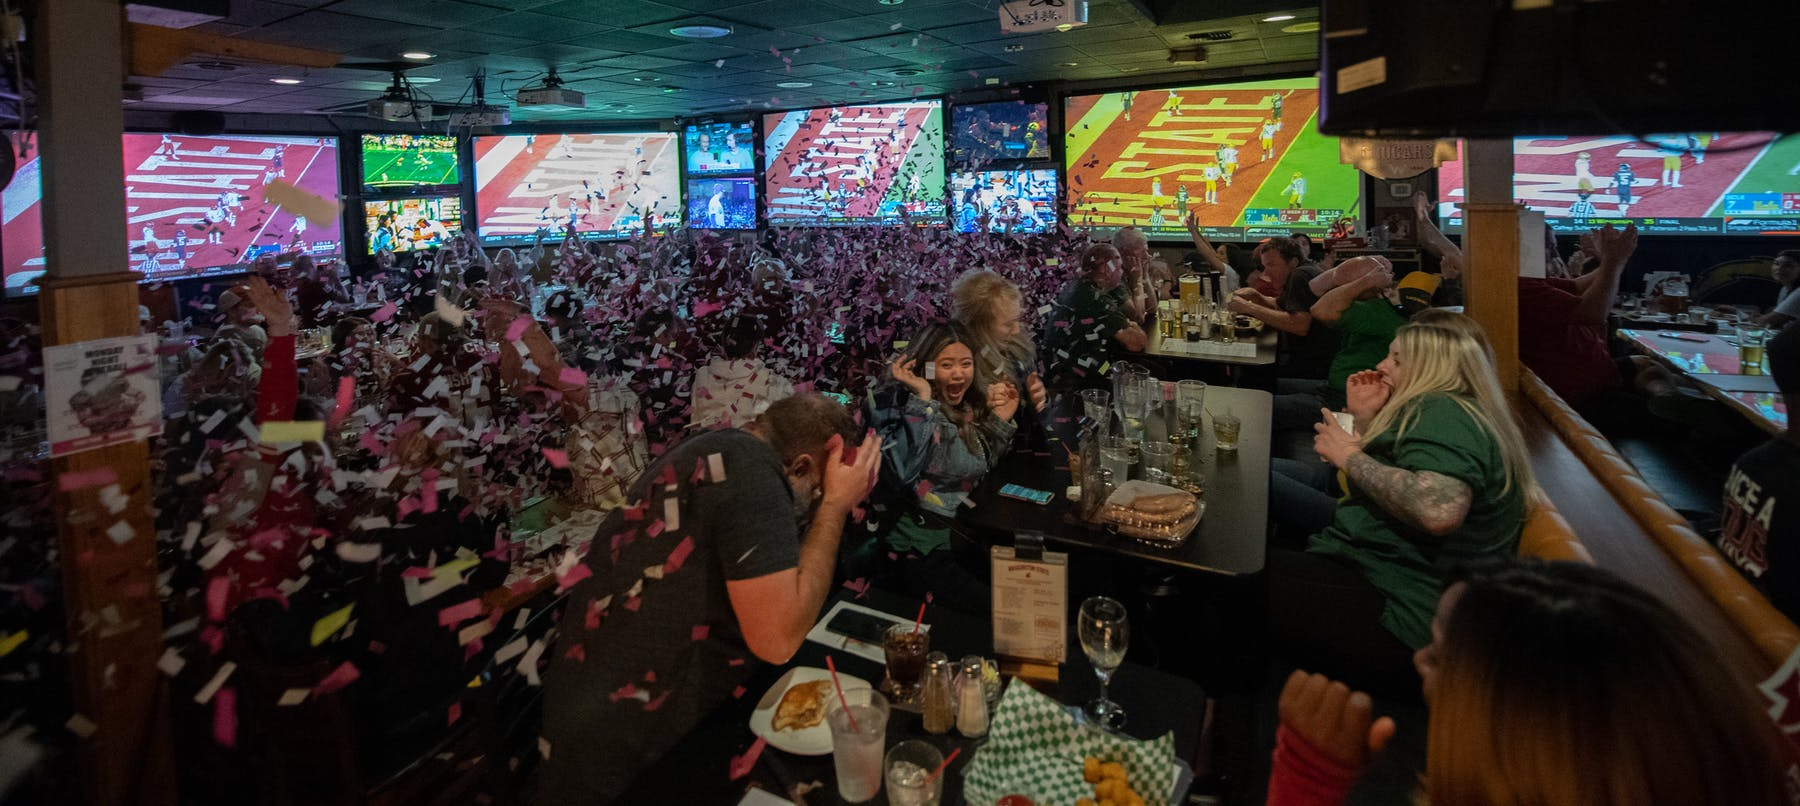 a group of people at the restaurant celebrating and throwing confetti